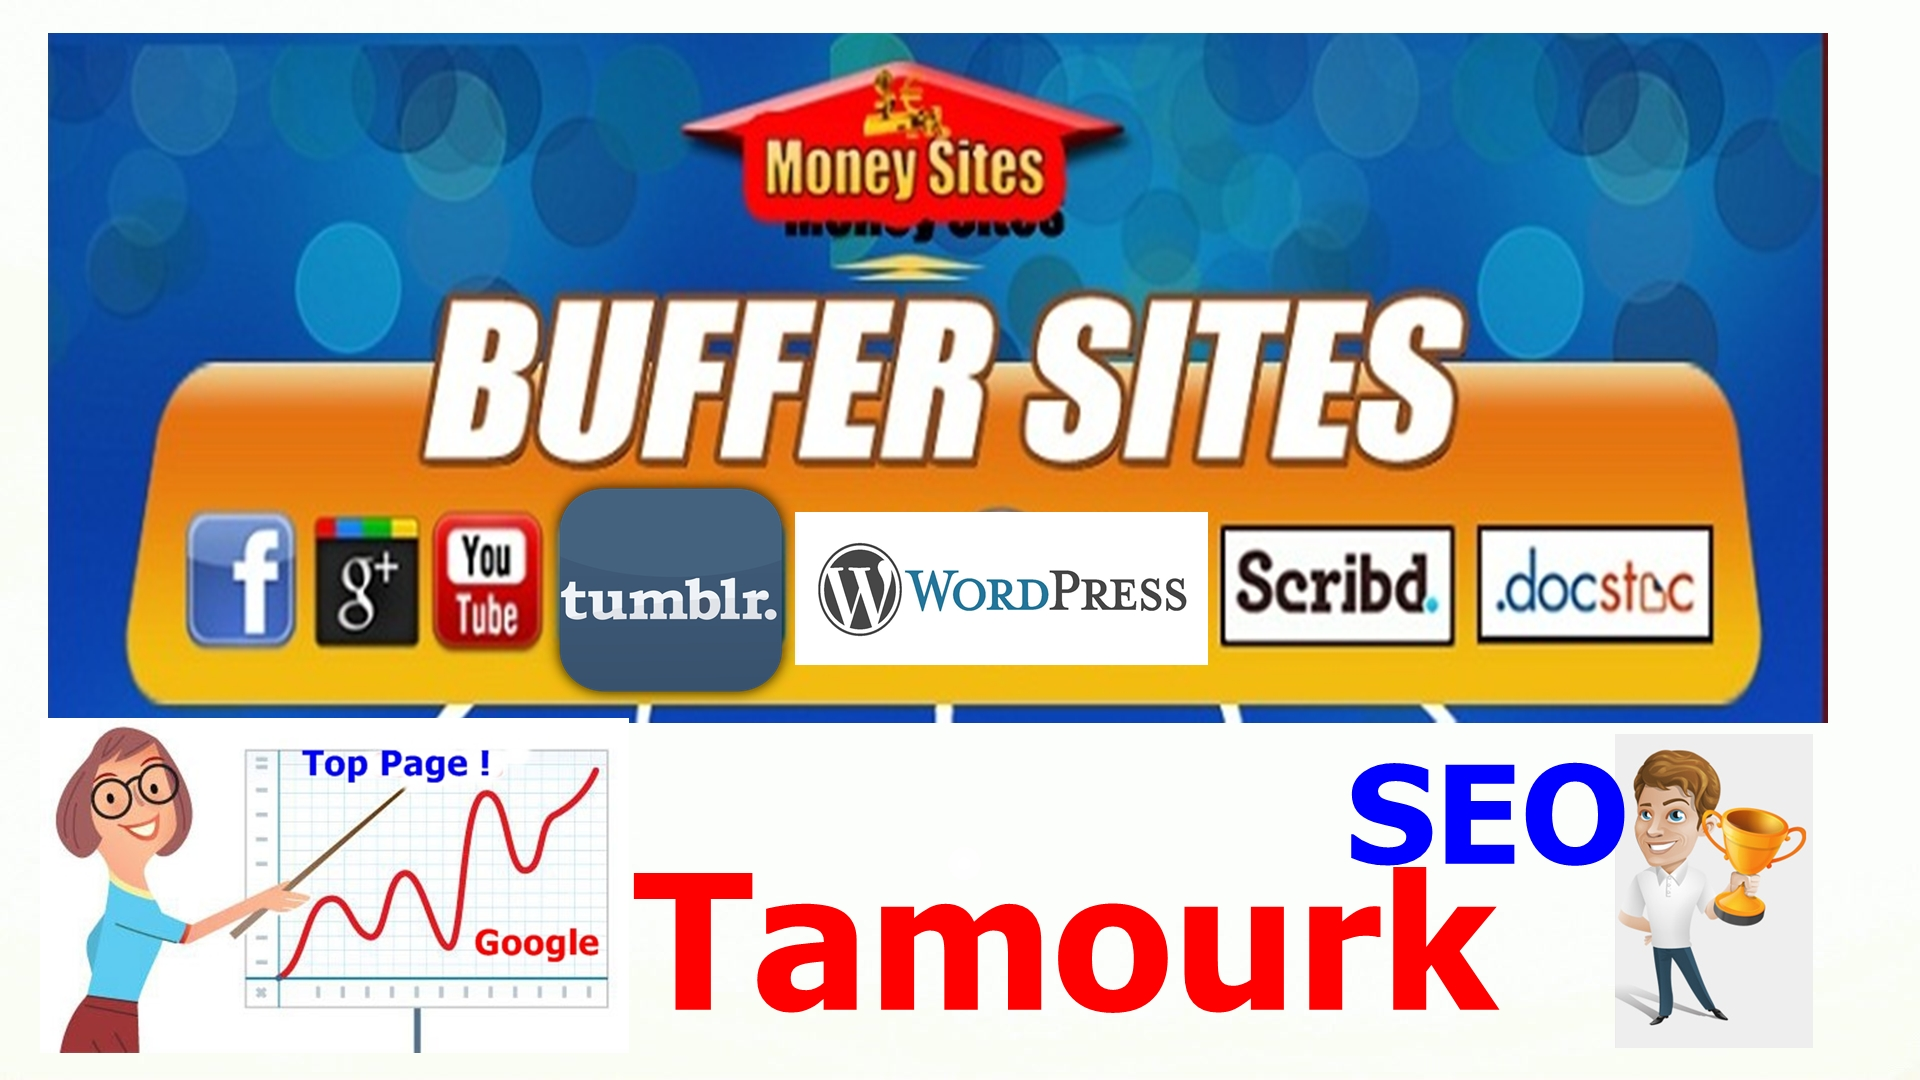 Manually create 10 Buffer sites from High PR Web 2.0 Properties + 2000 Tier 2 Social Bookmarks